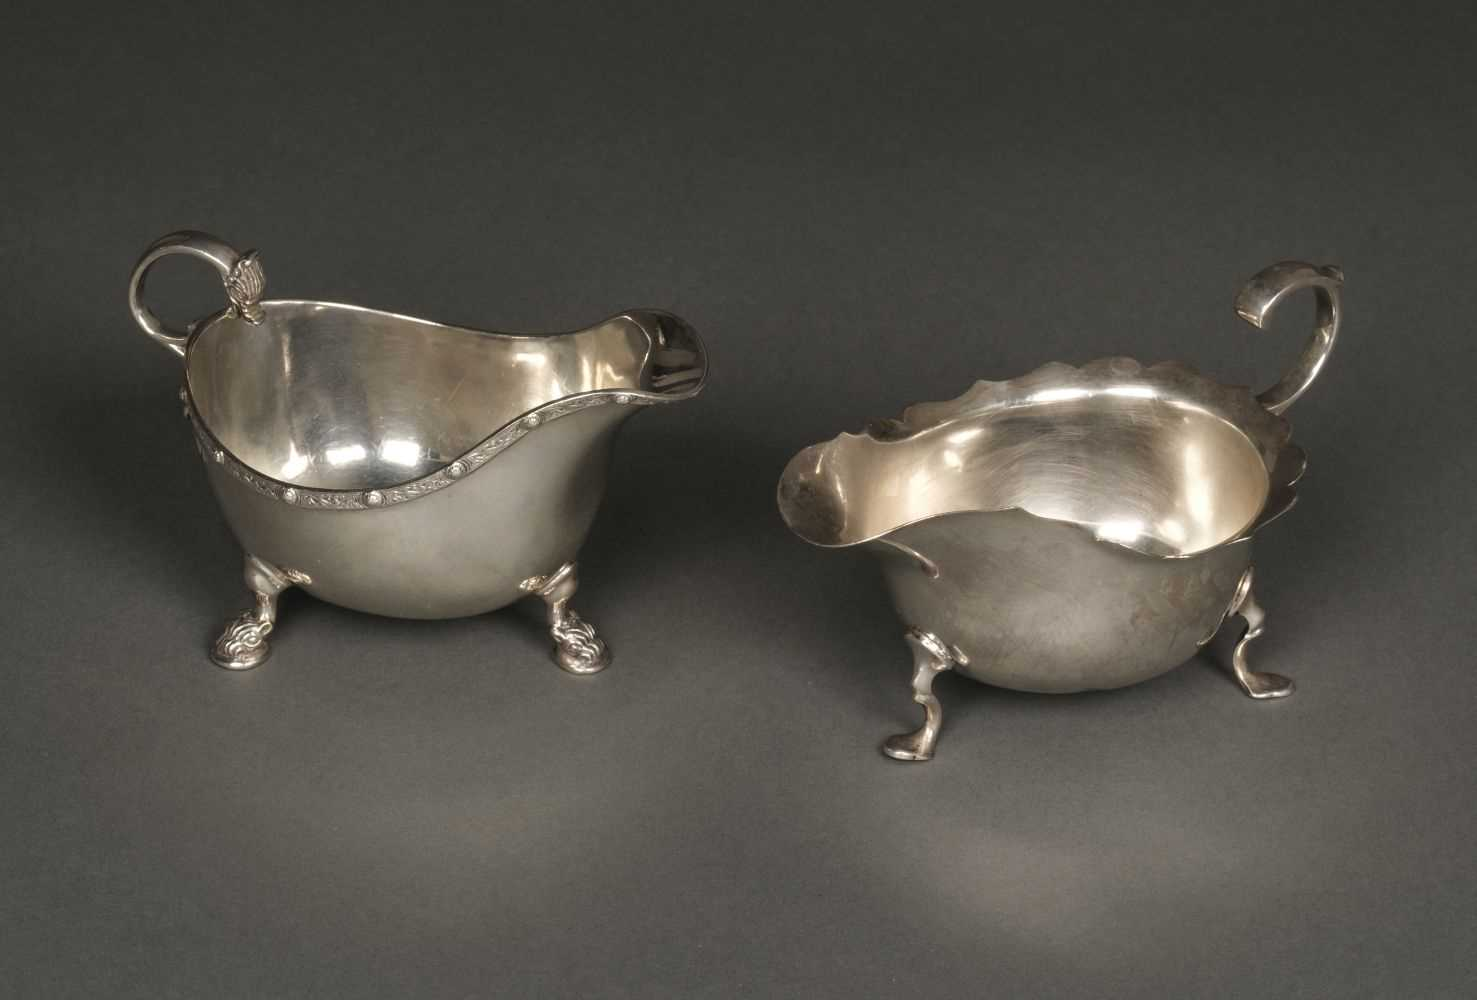 Lot 30 - Silver Sauce Boats, both 20th century